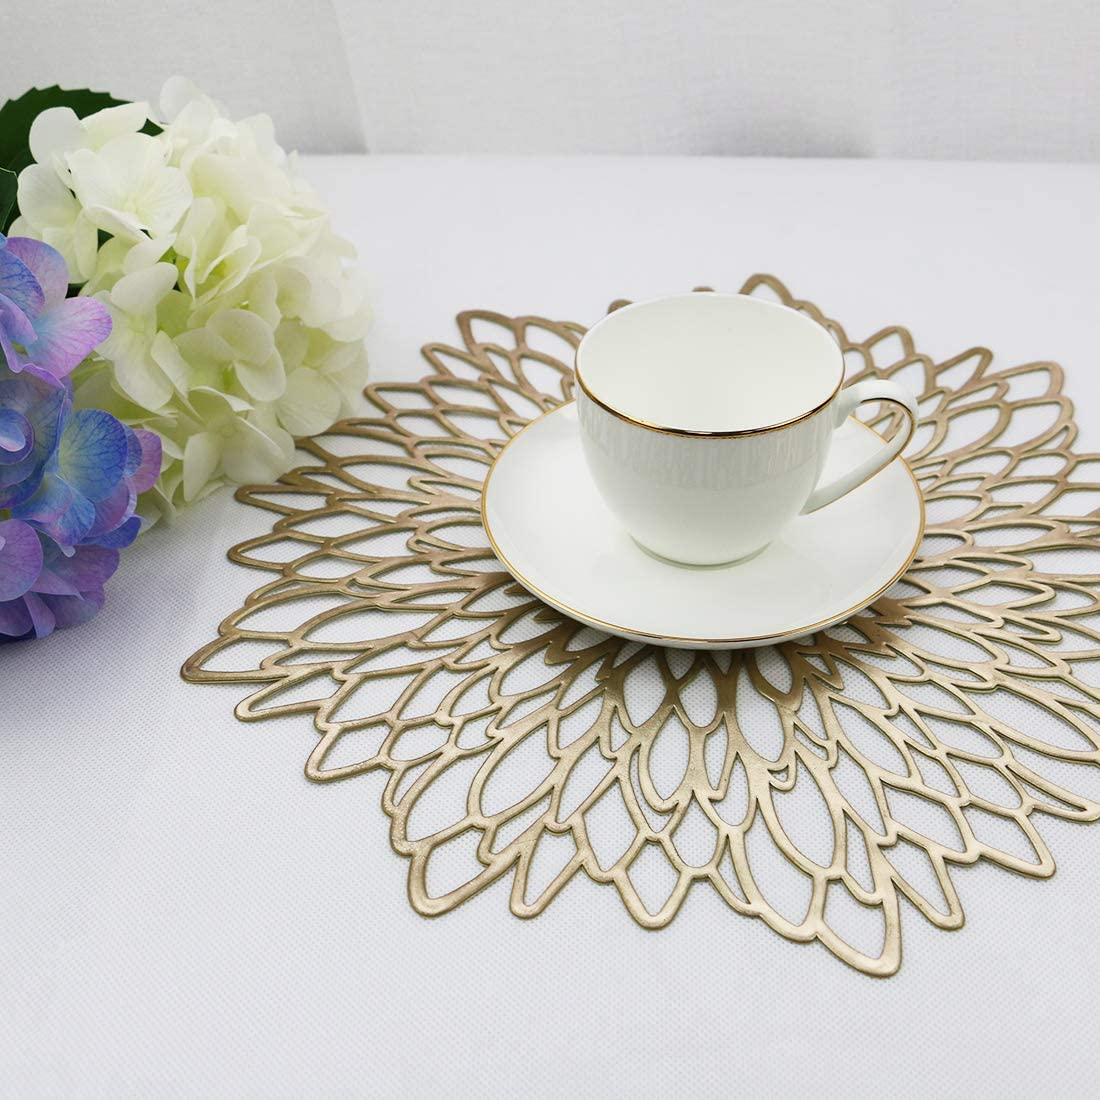 Home Kitchen Decoration Washable Dining Table Coffee Mats Olrla Round Gold PlaceMats Set of 4 Bauhinia Golden,4 PVC Durable Waterproof Non-slip Heat-resistant for Restaurant,Cafe